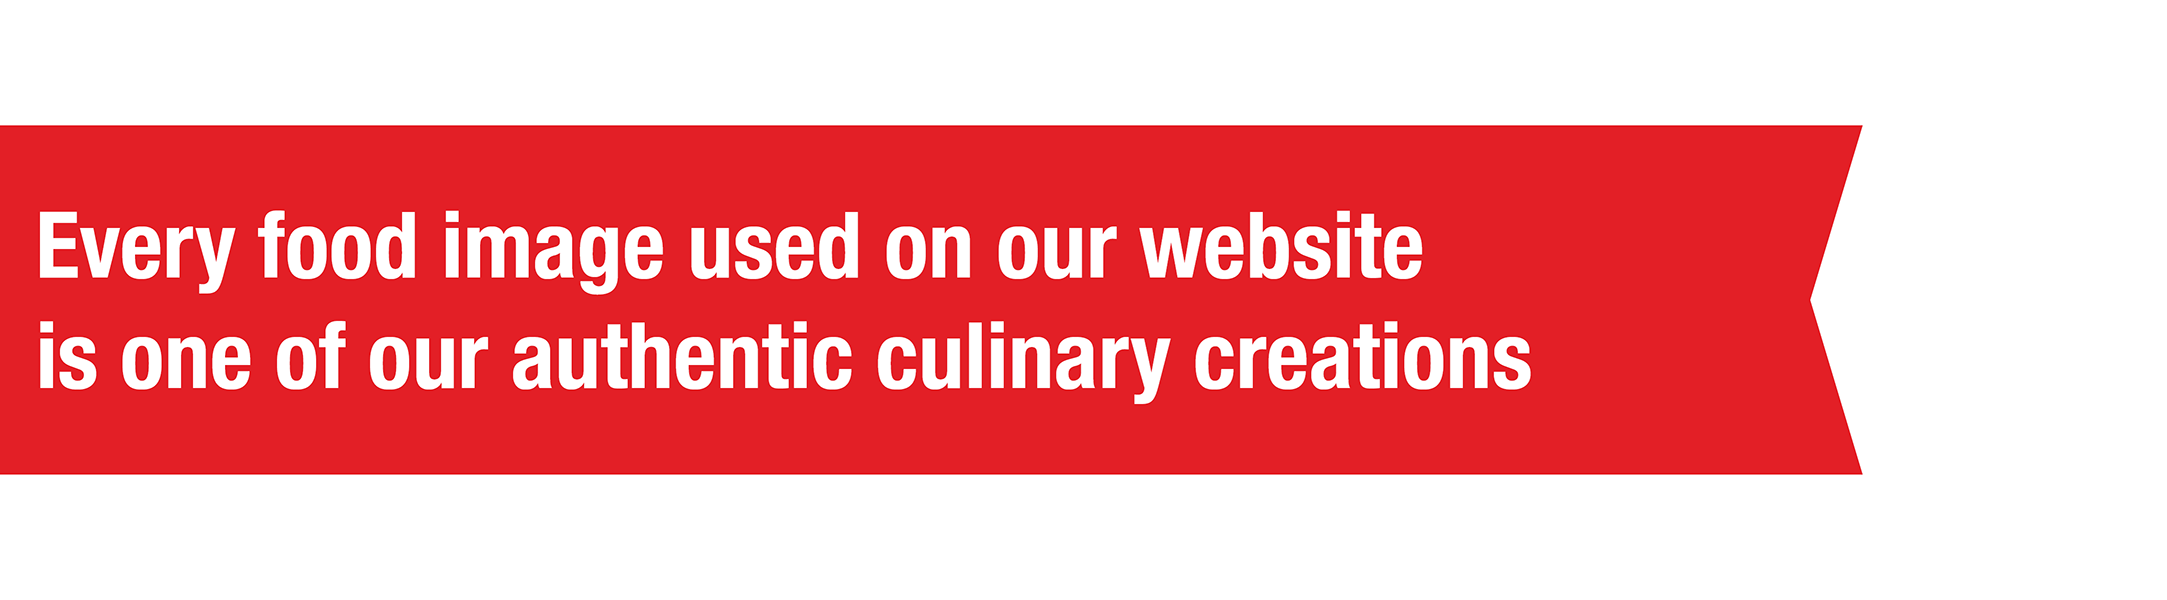 Every food image used on our website is one of our authentic culinary creations